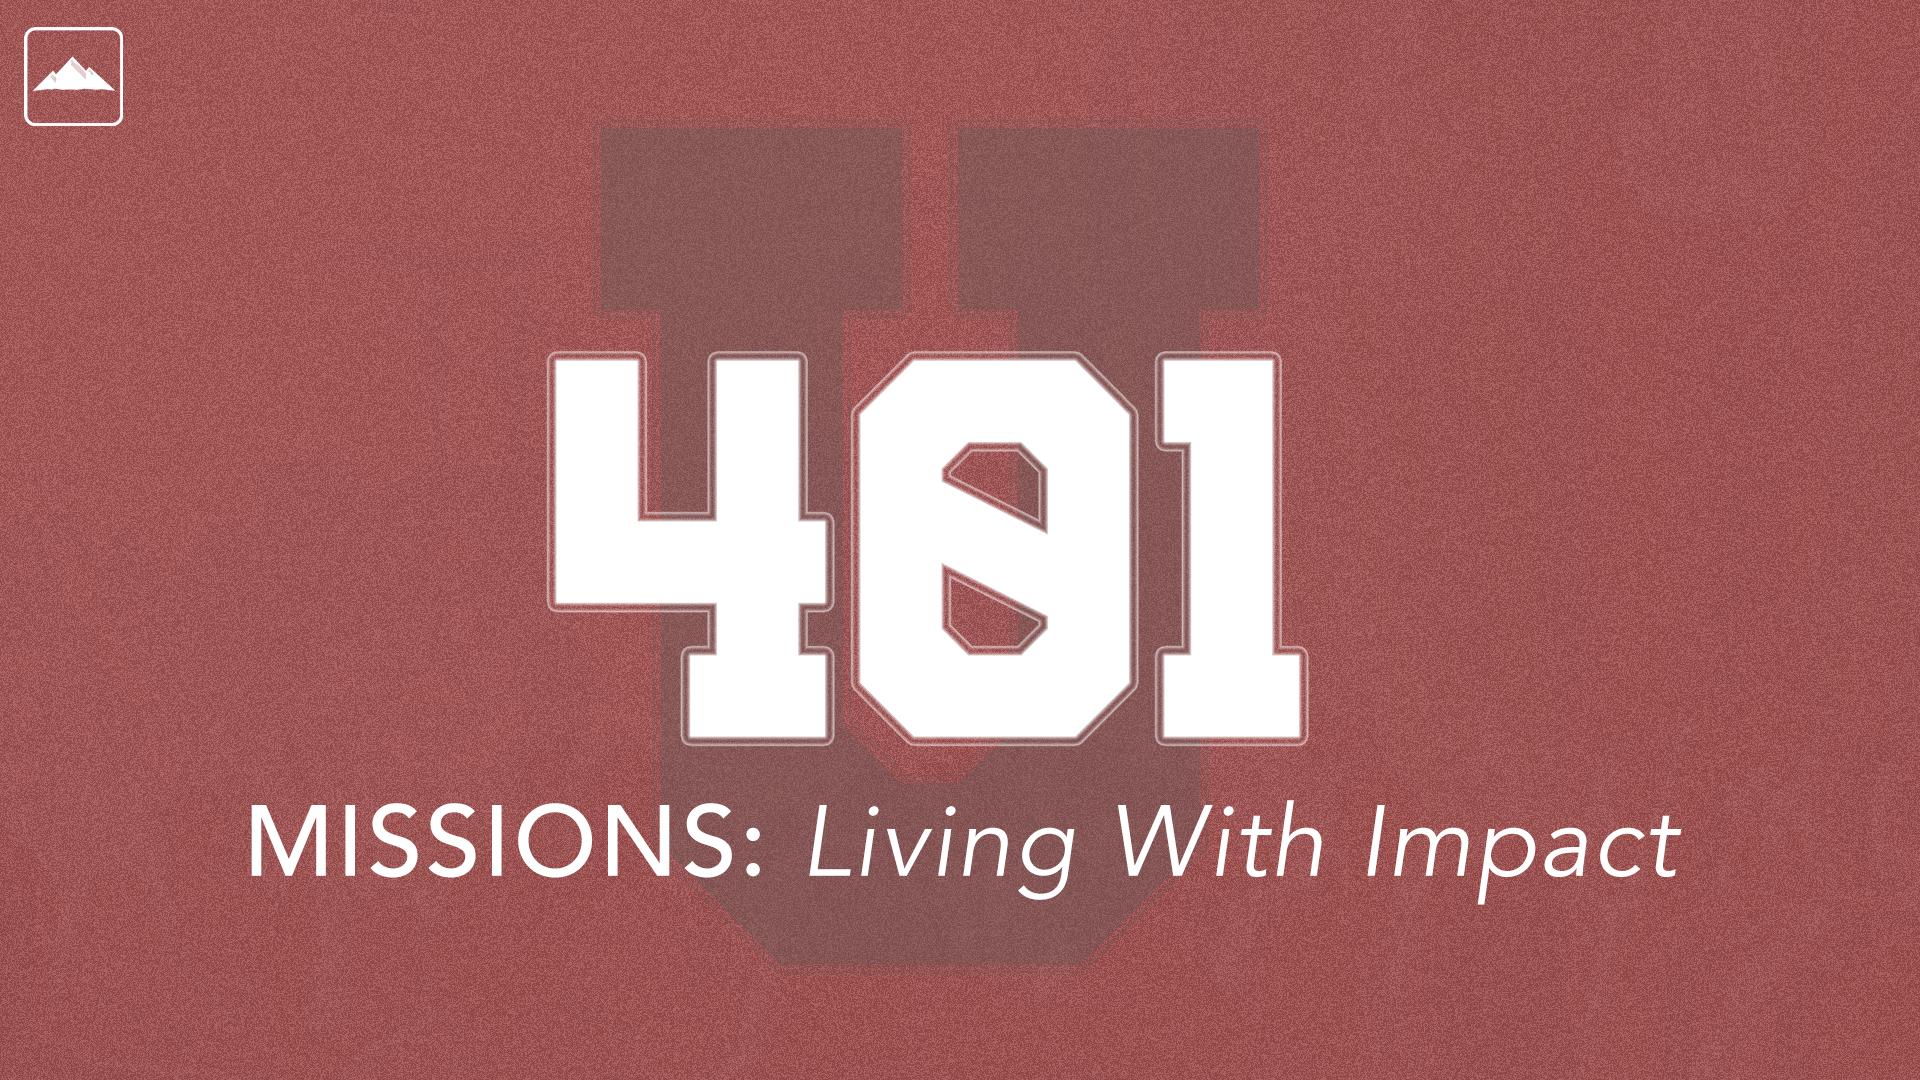 401 - Missions